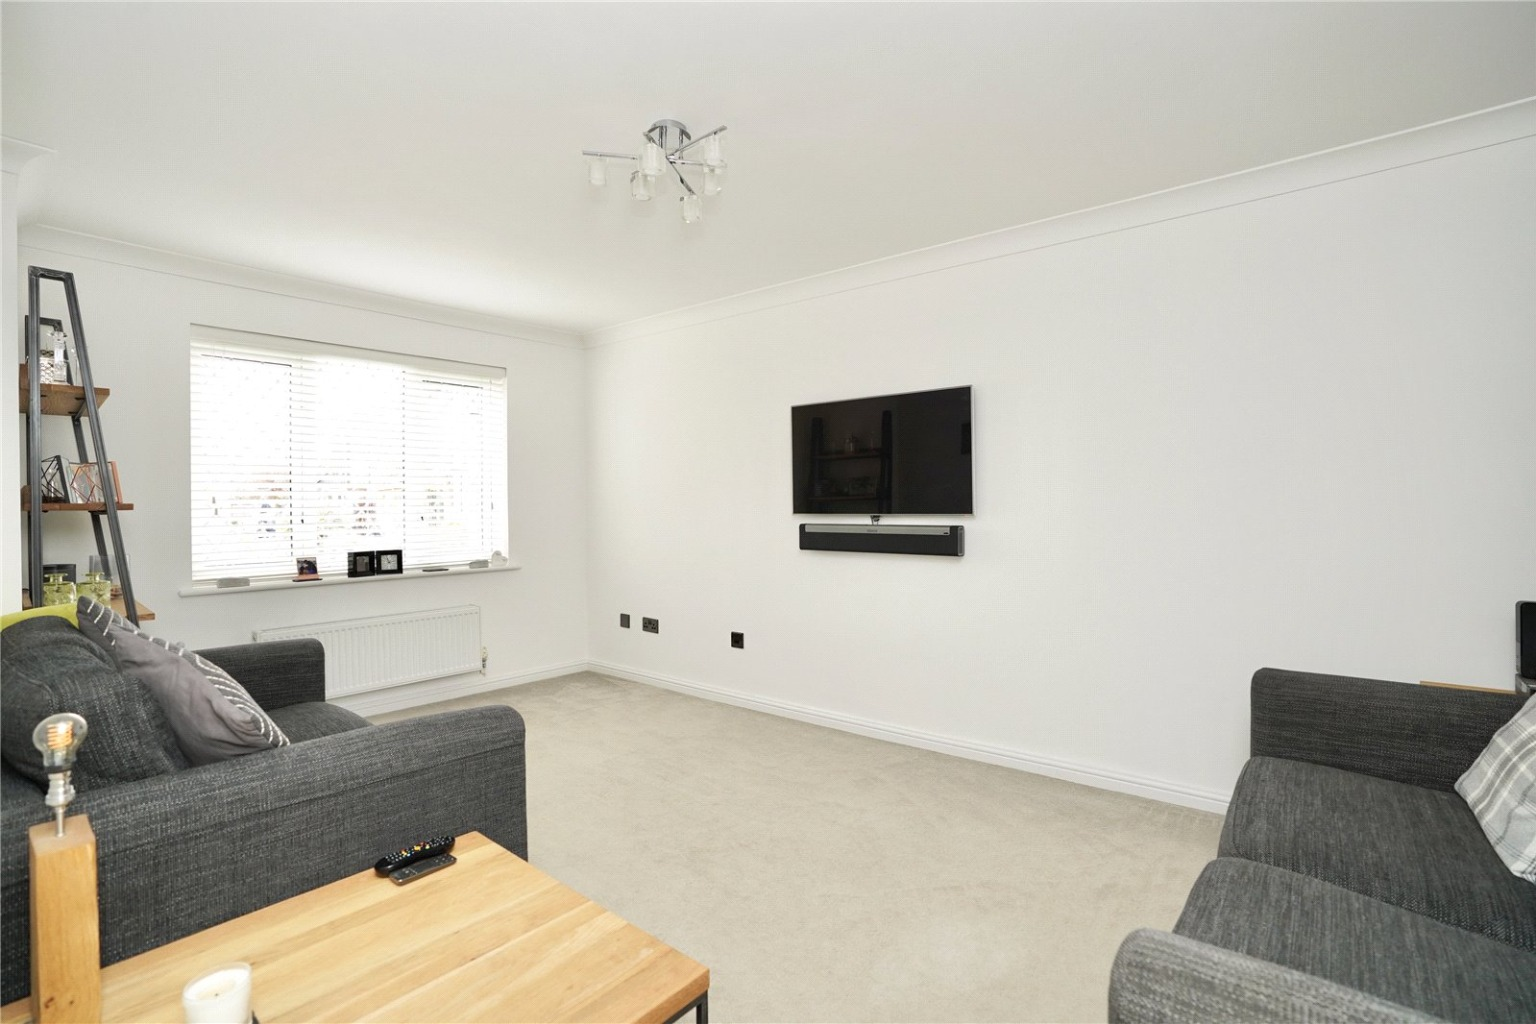 3 bed detached house for sale in Chamberlain Way, St. Neots  - Property Image 3